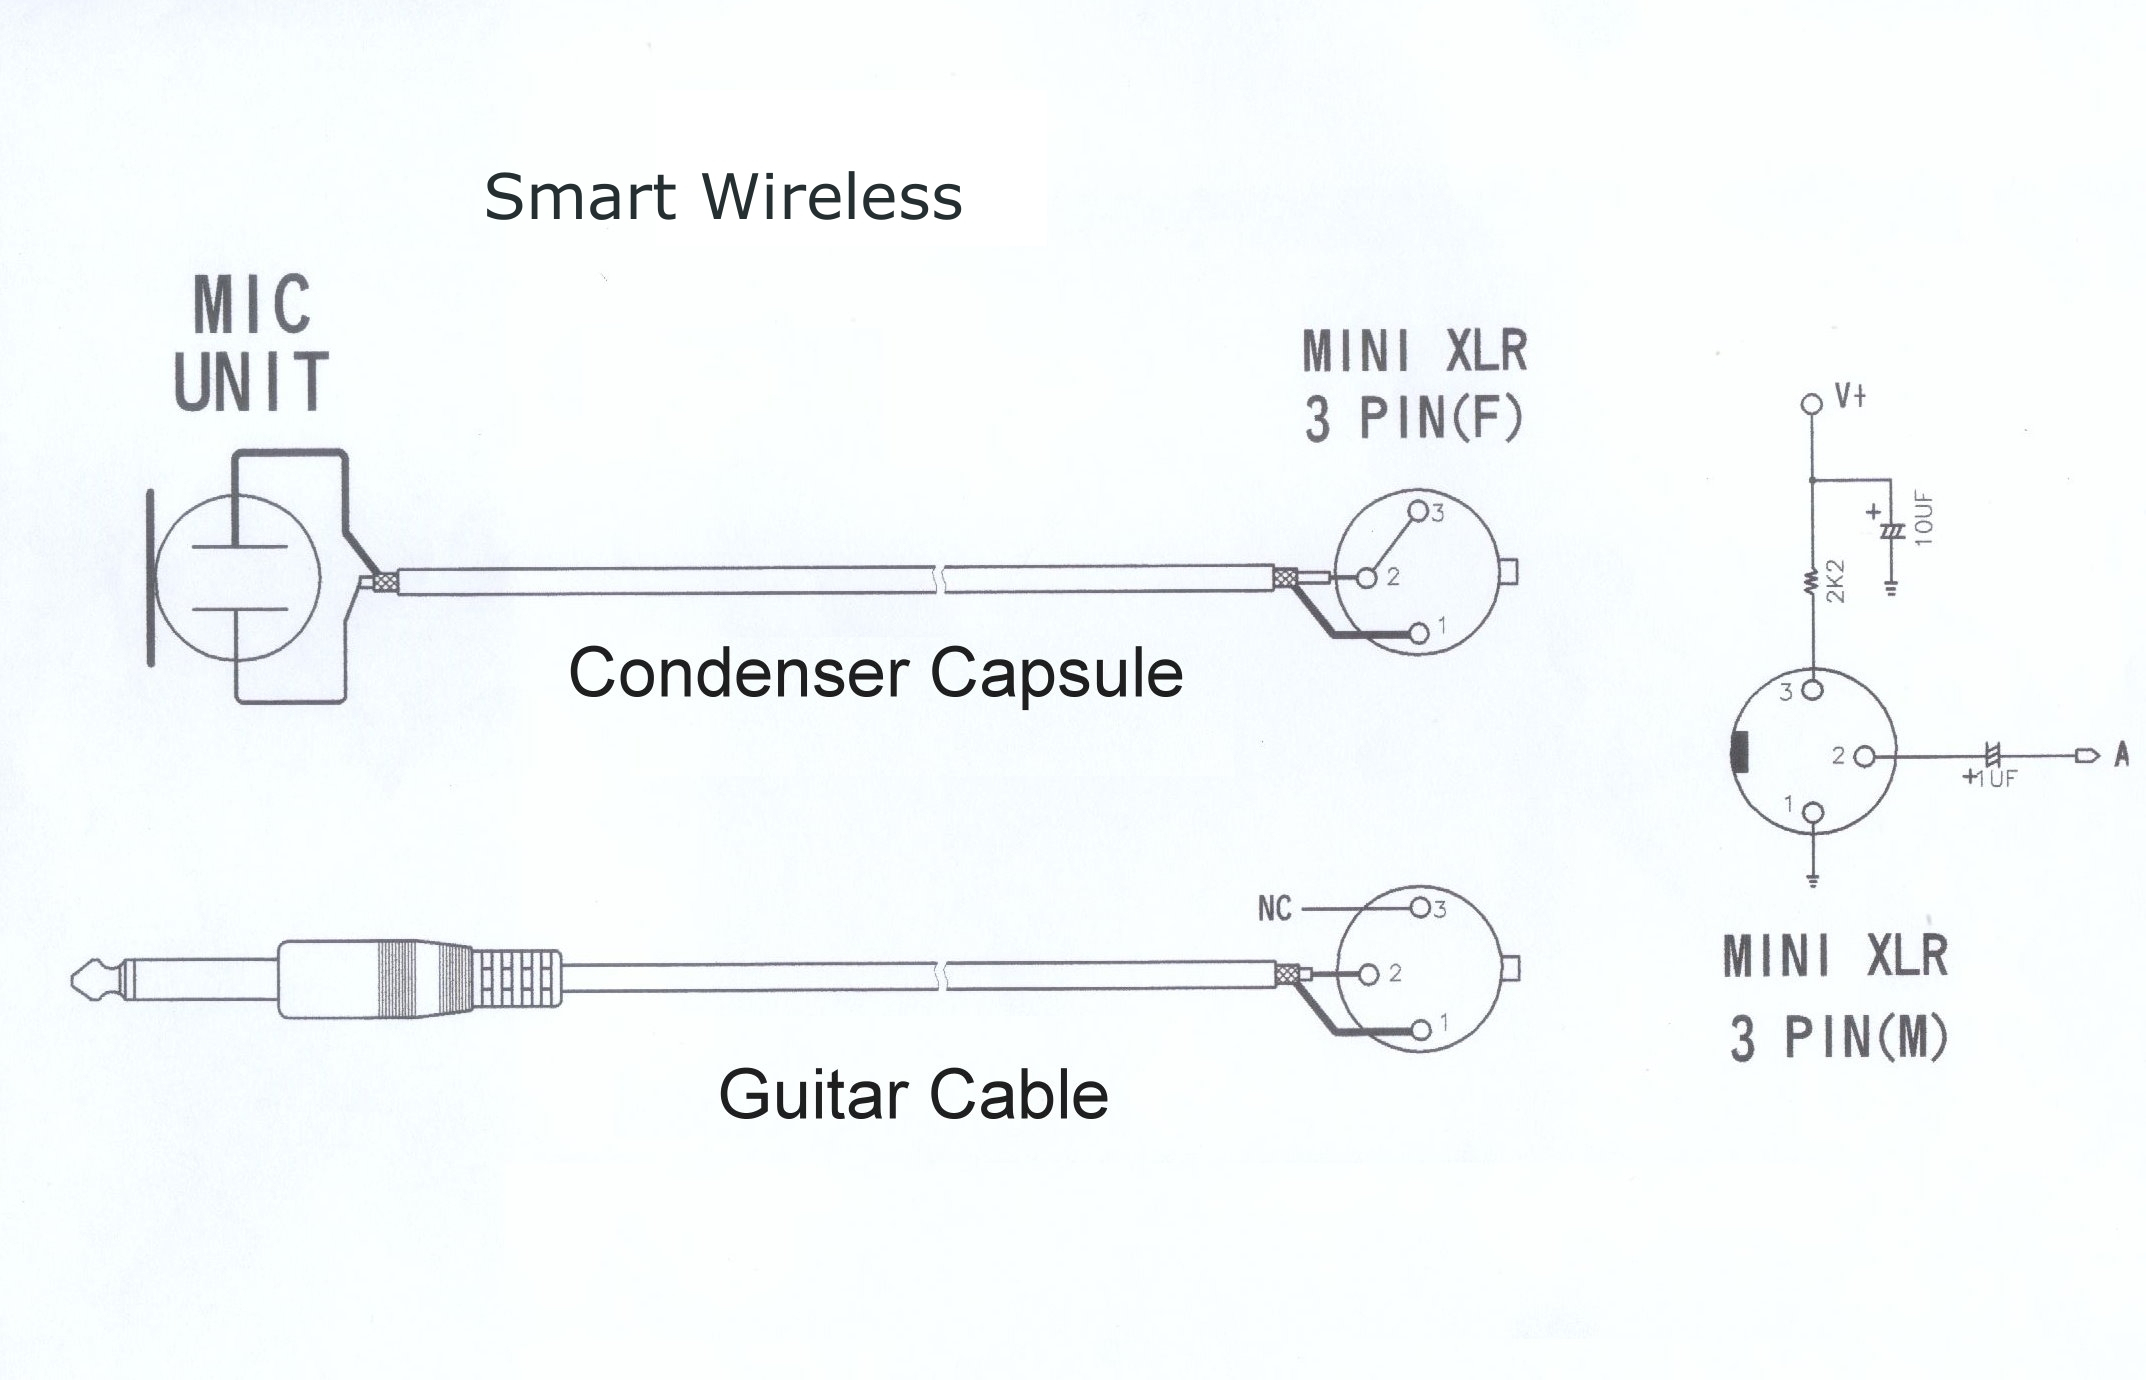 Microphone Cable Wiring - Wiring Diagrams - Wiring Diagram For Usb Headset